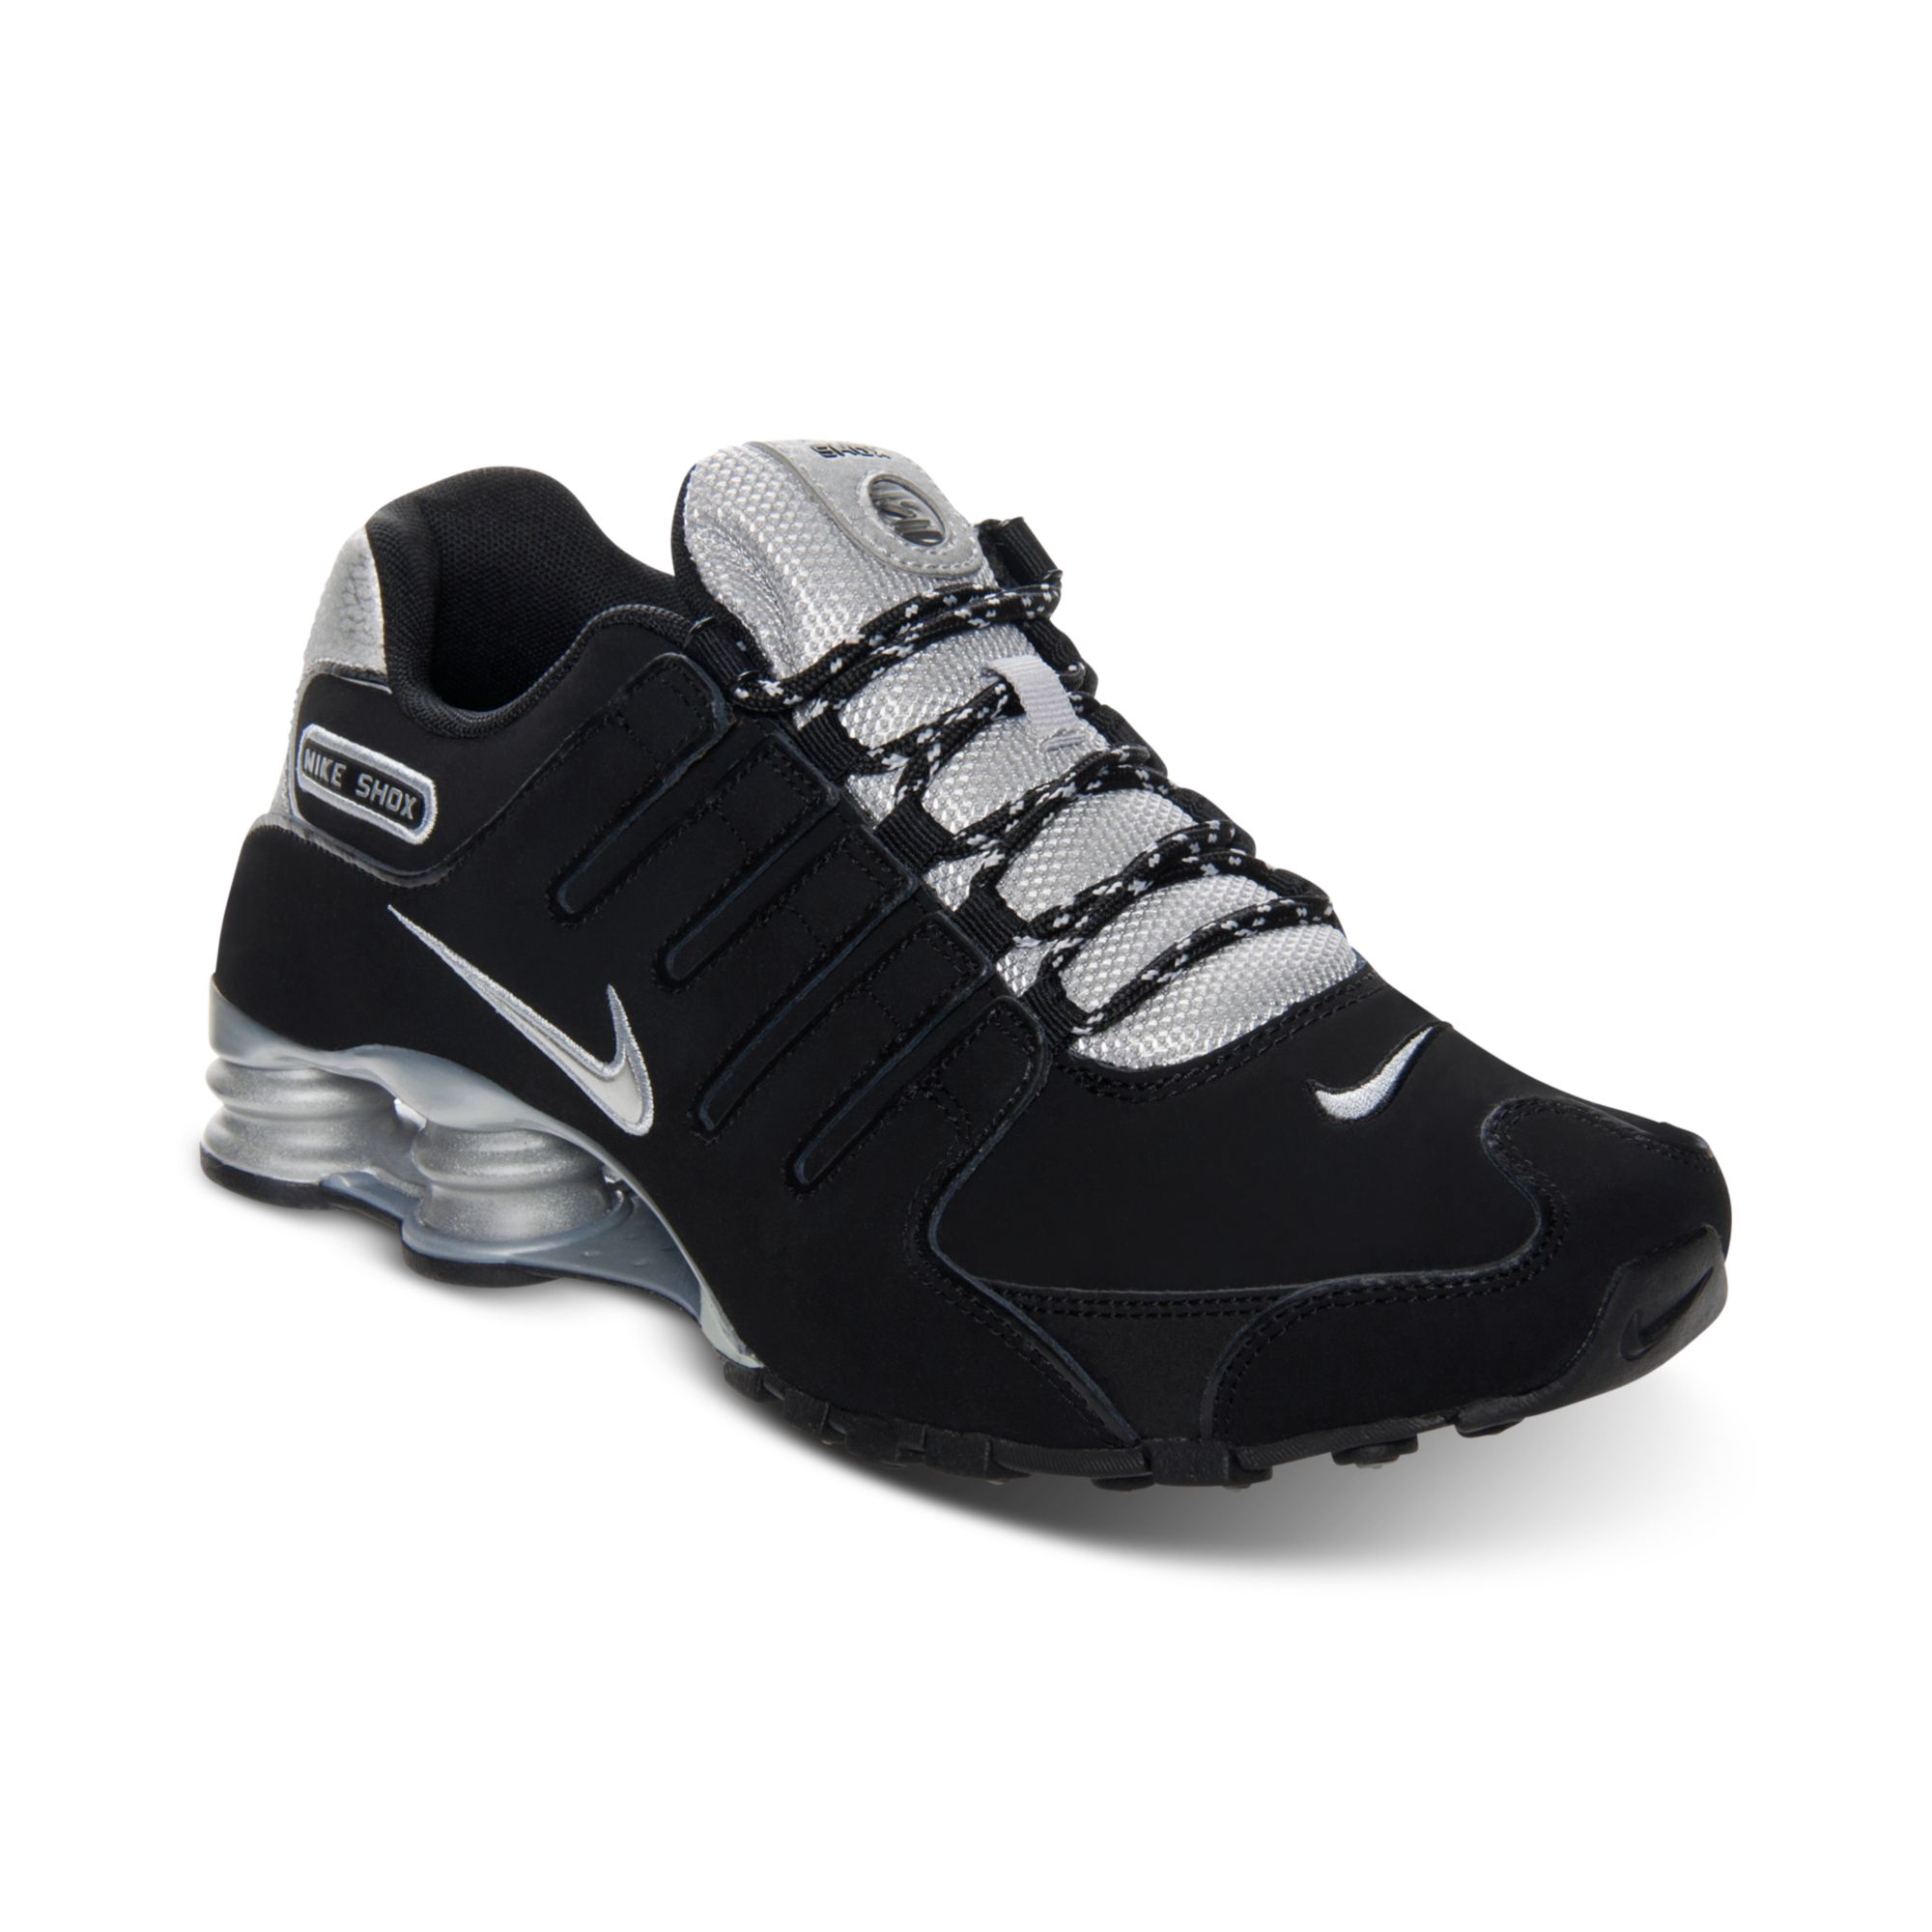 63a57d7b258 Lyst - Nike Mens Shox Nz Eu Running Sneakers From Finish Line in ...